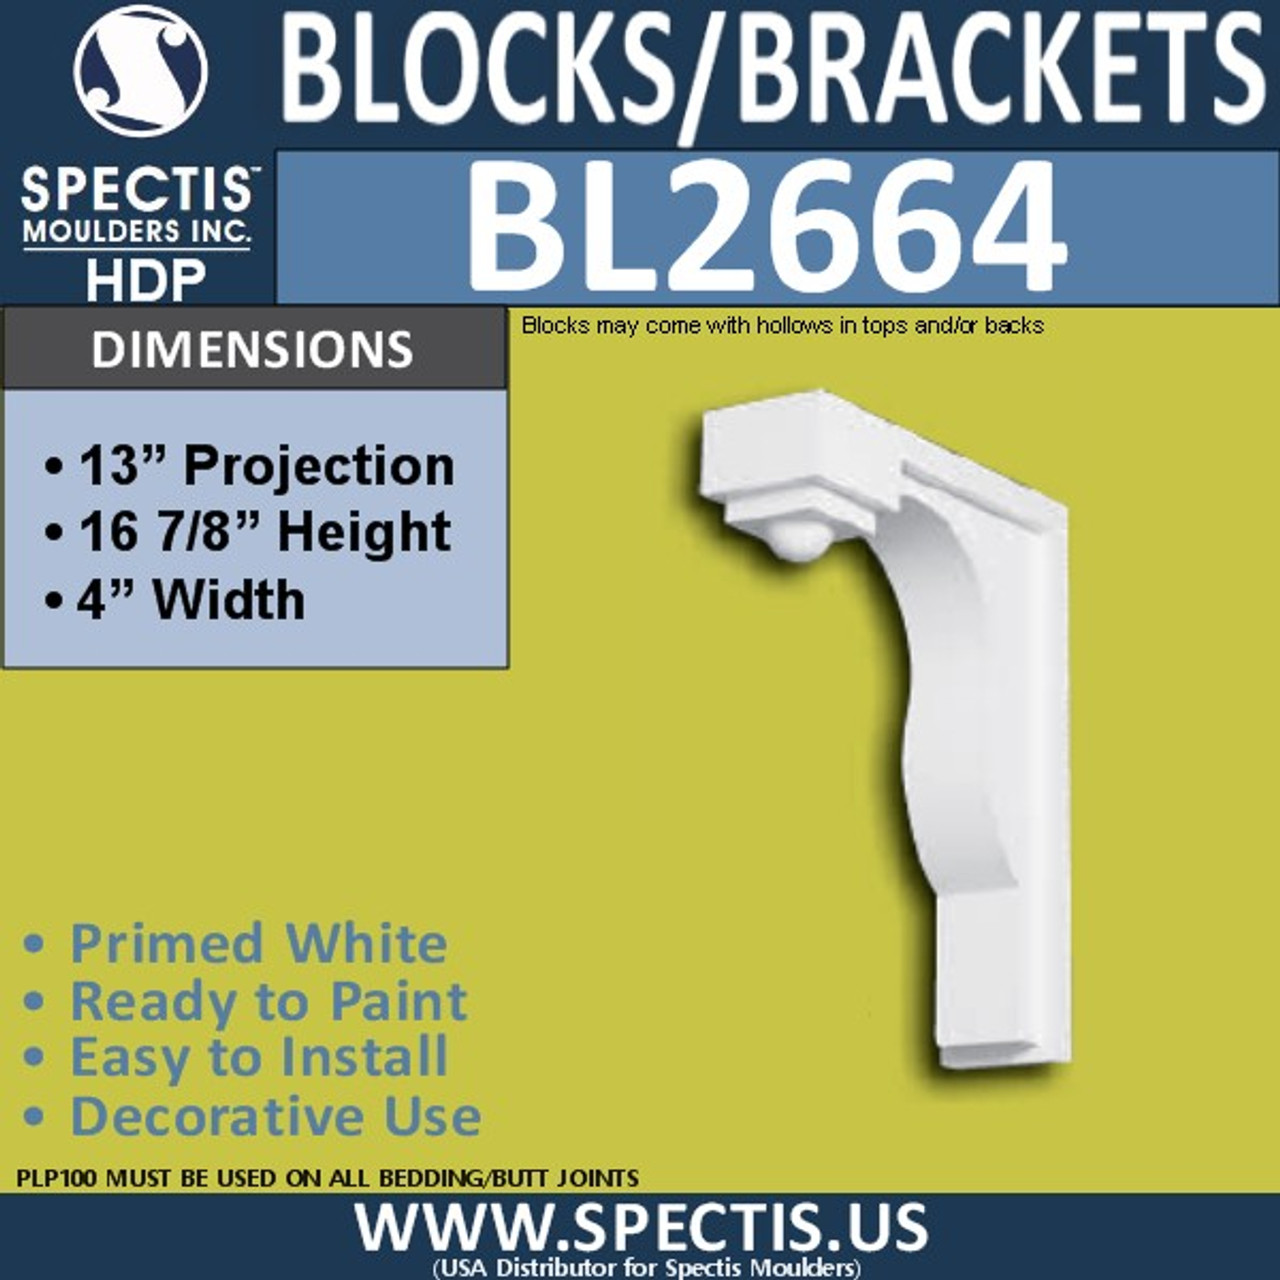 "BL2664 Eave Block or Bracket 4""W x 16.9""H x 13"" P"